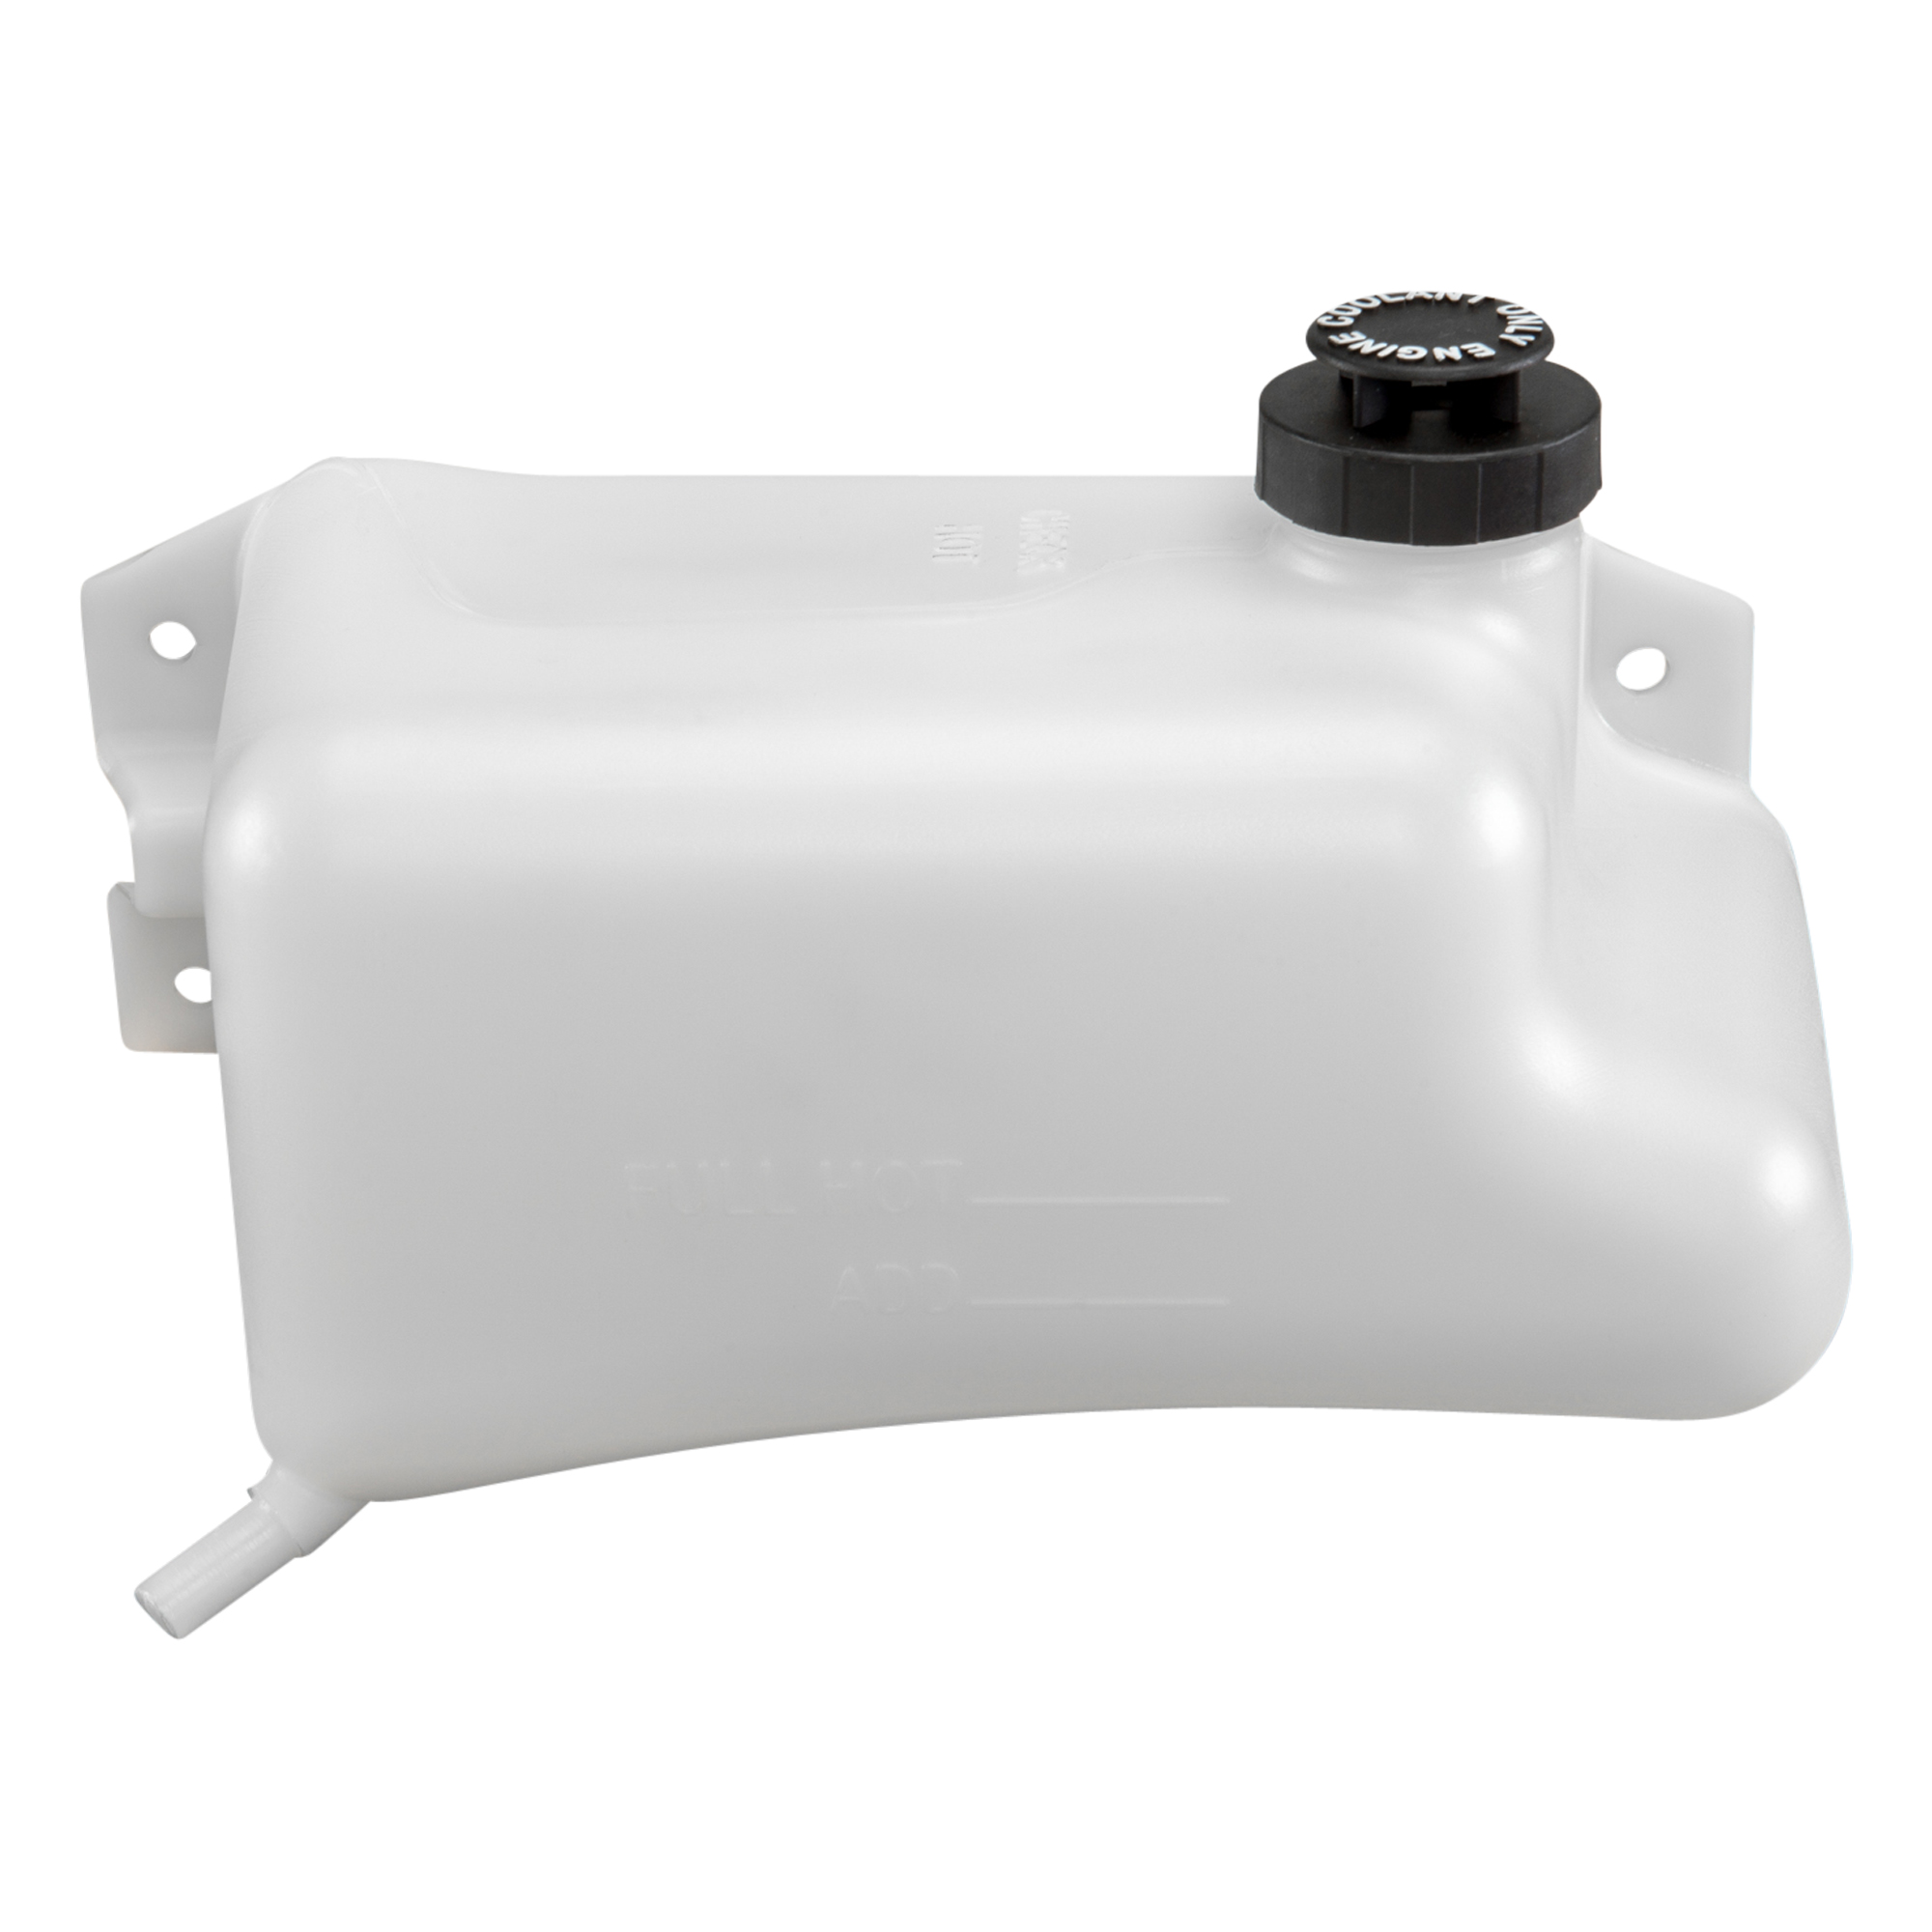 Replacement Windshield Washer Tank Assembly For 1994 Chevy S-10 Blazer